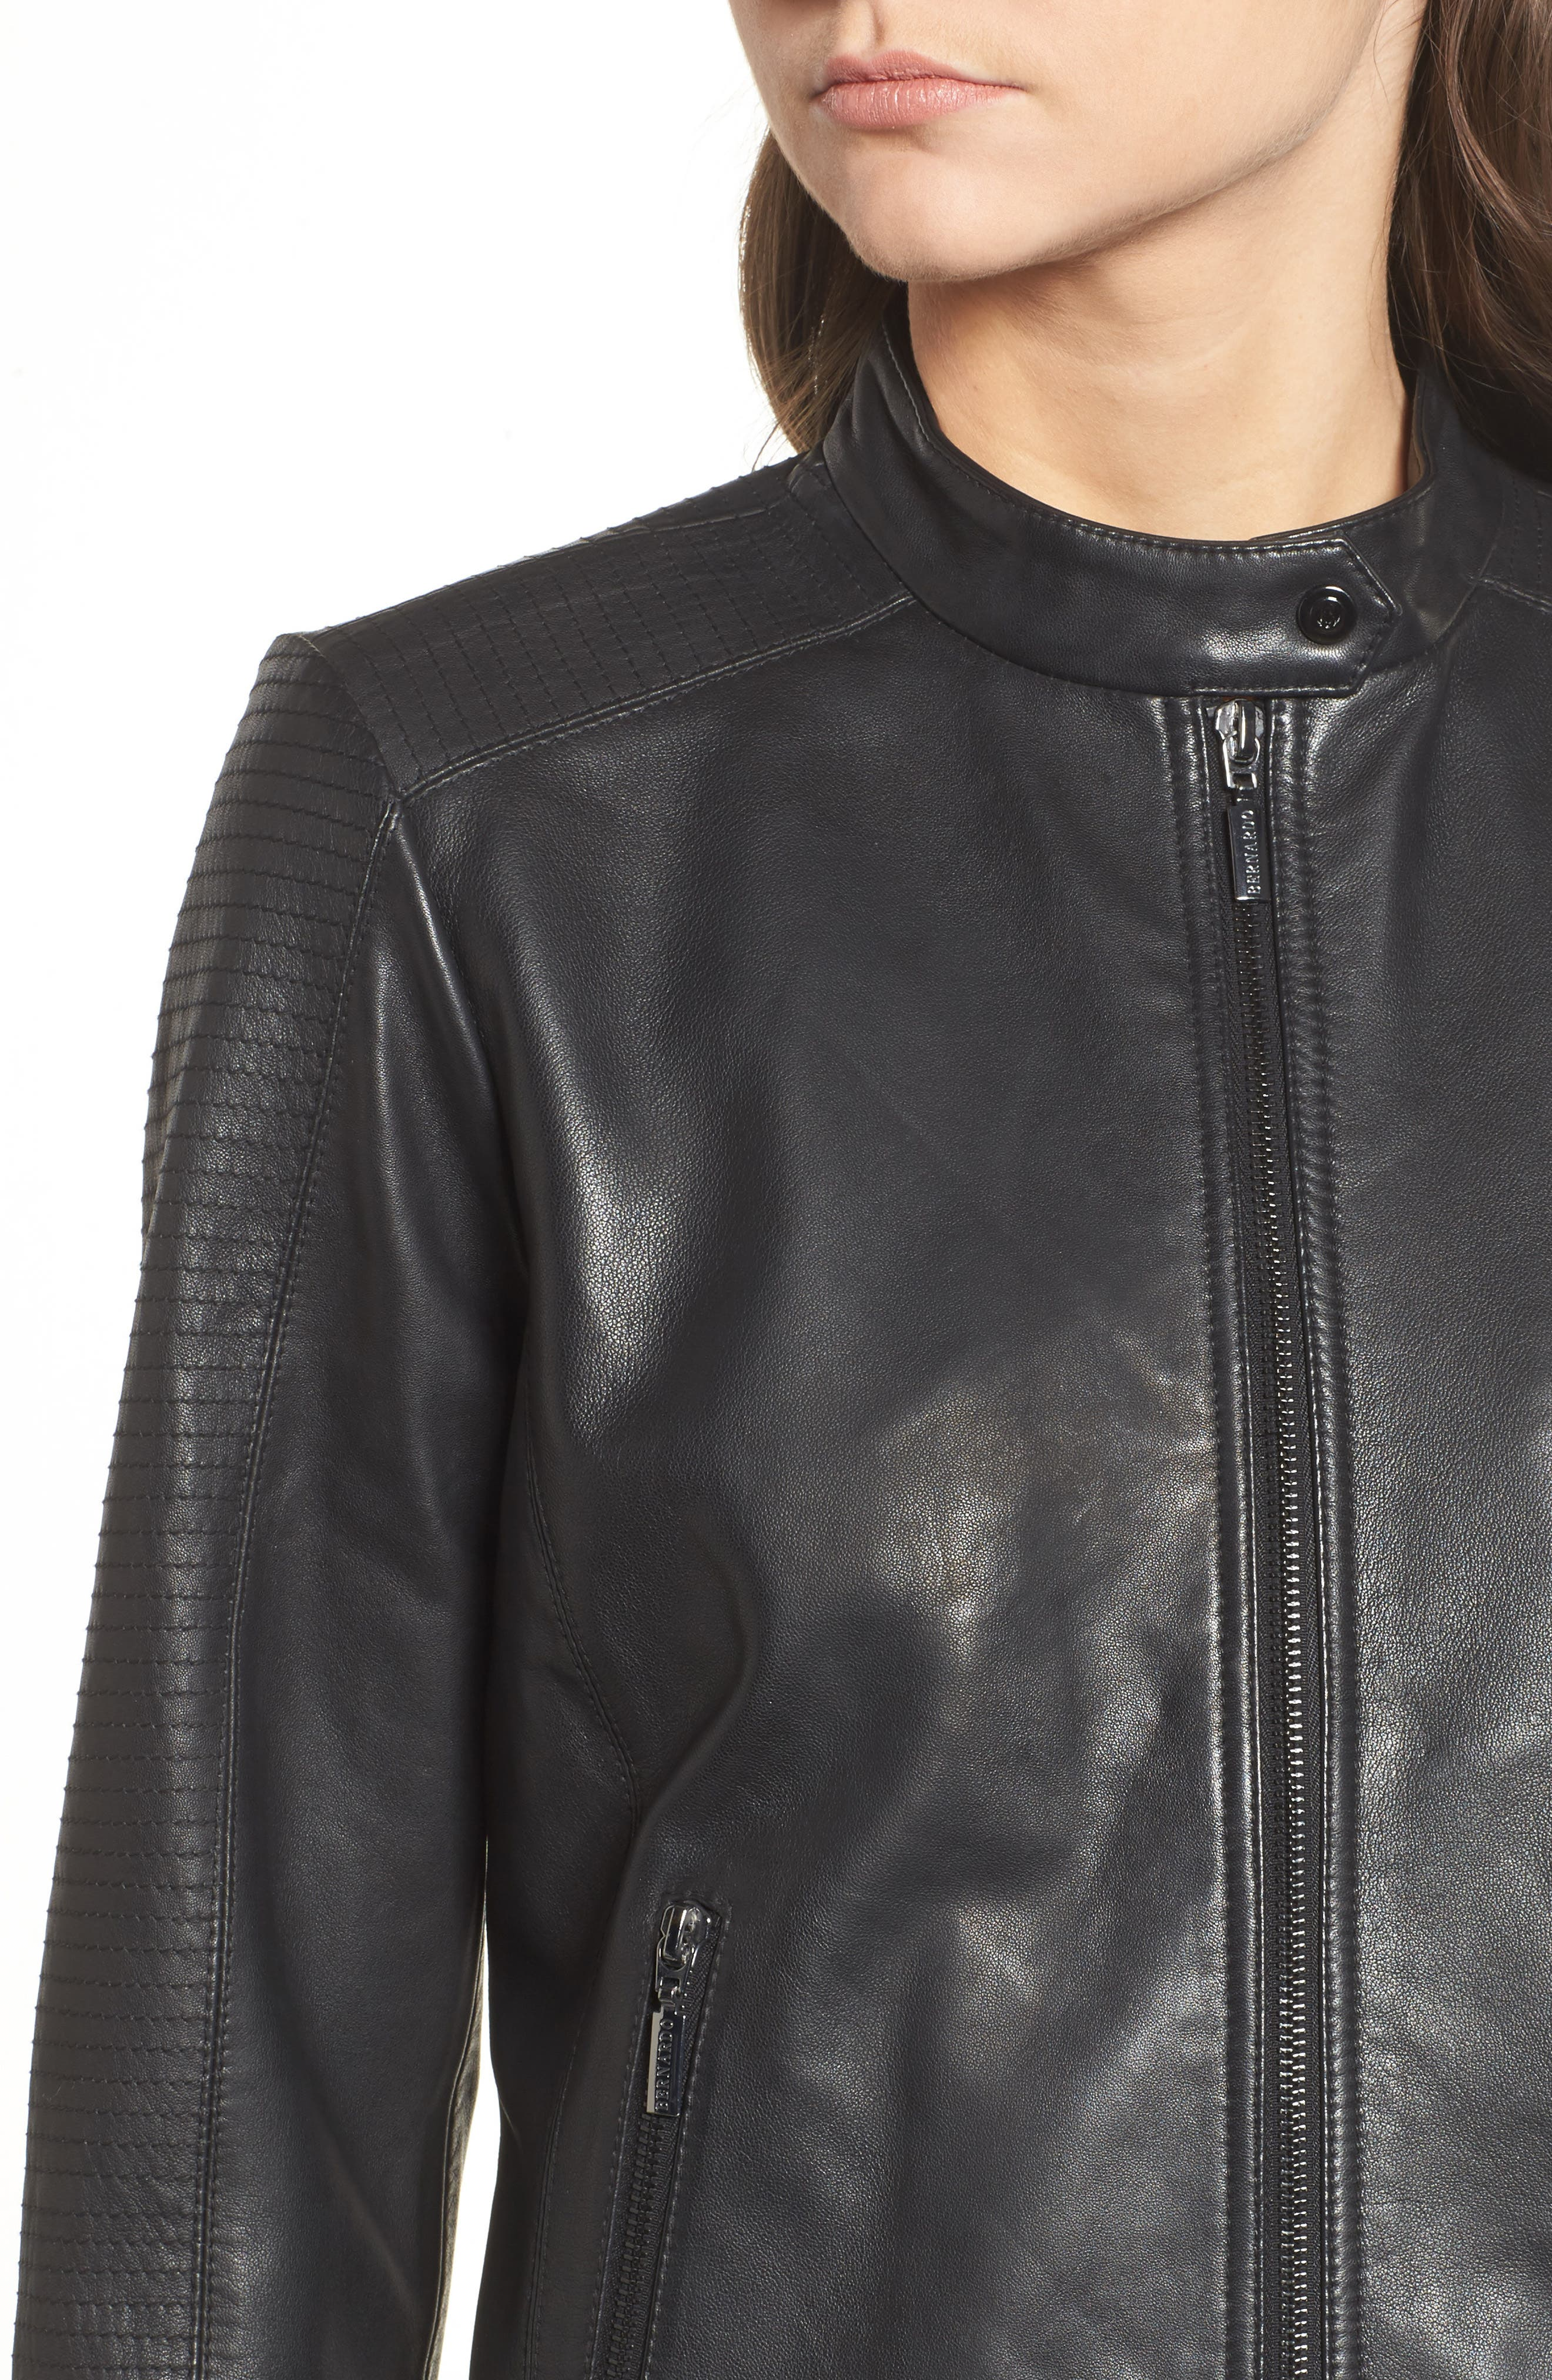 Kirwin Leather Moto Jacket,                             Alternate thumbnail 4, color,                             001